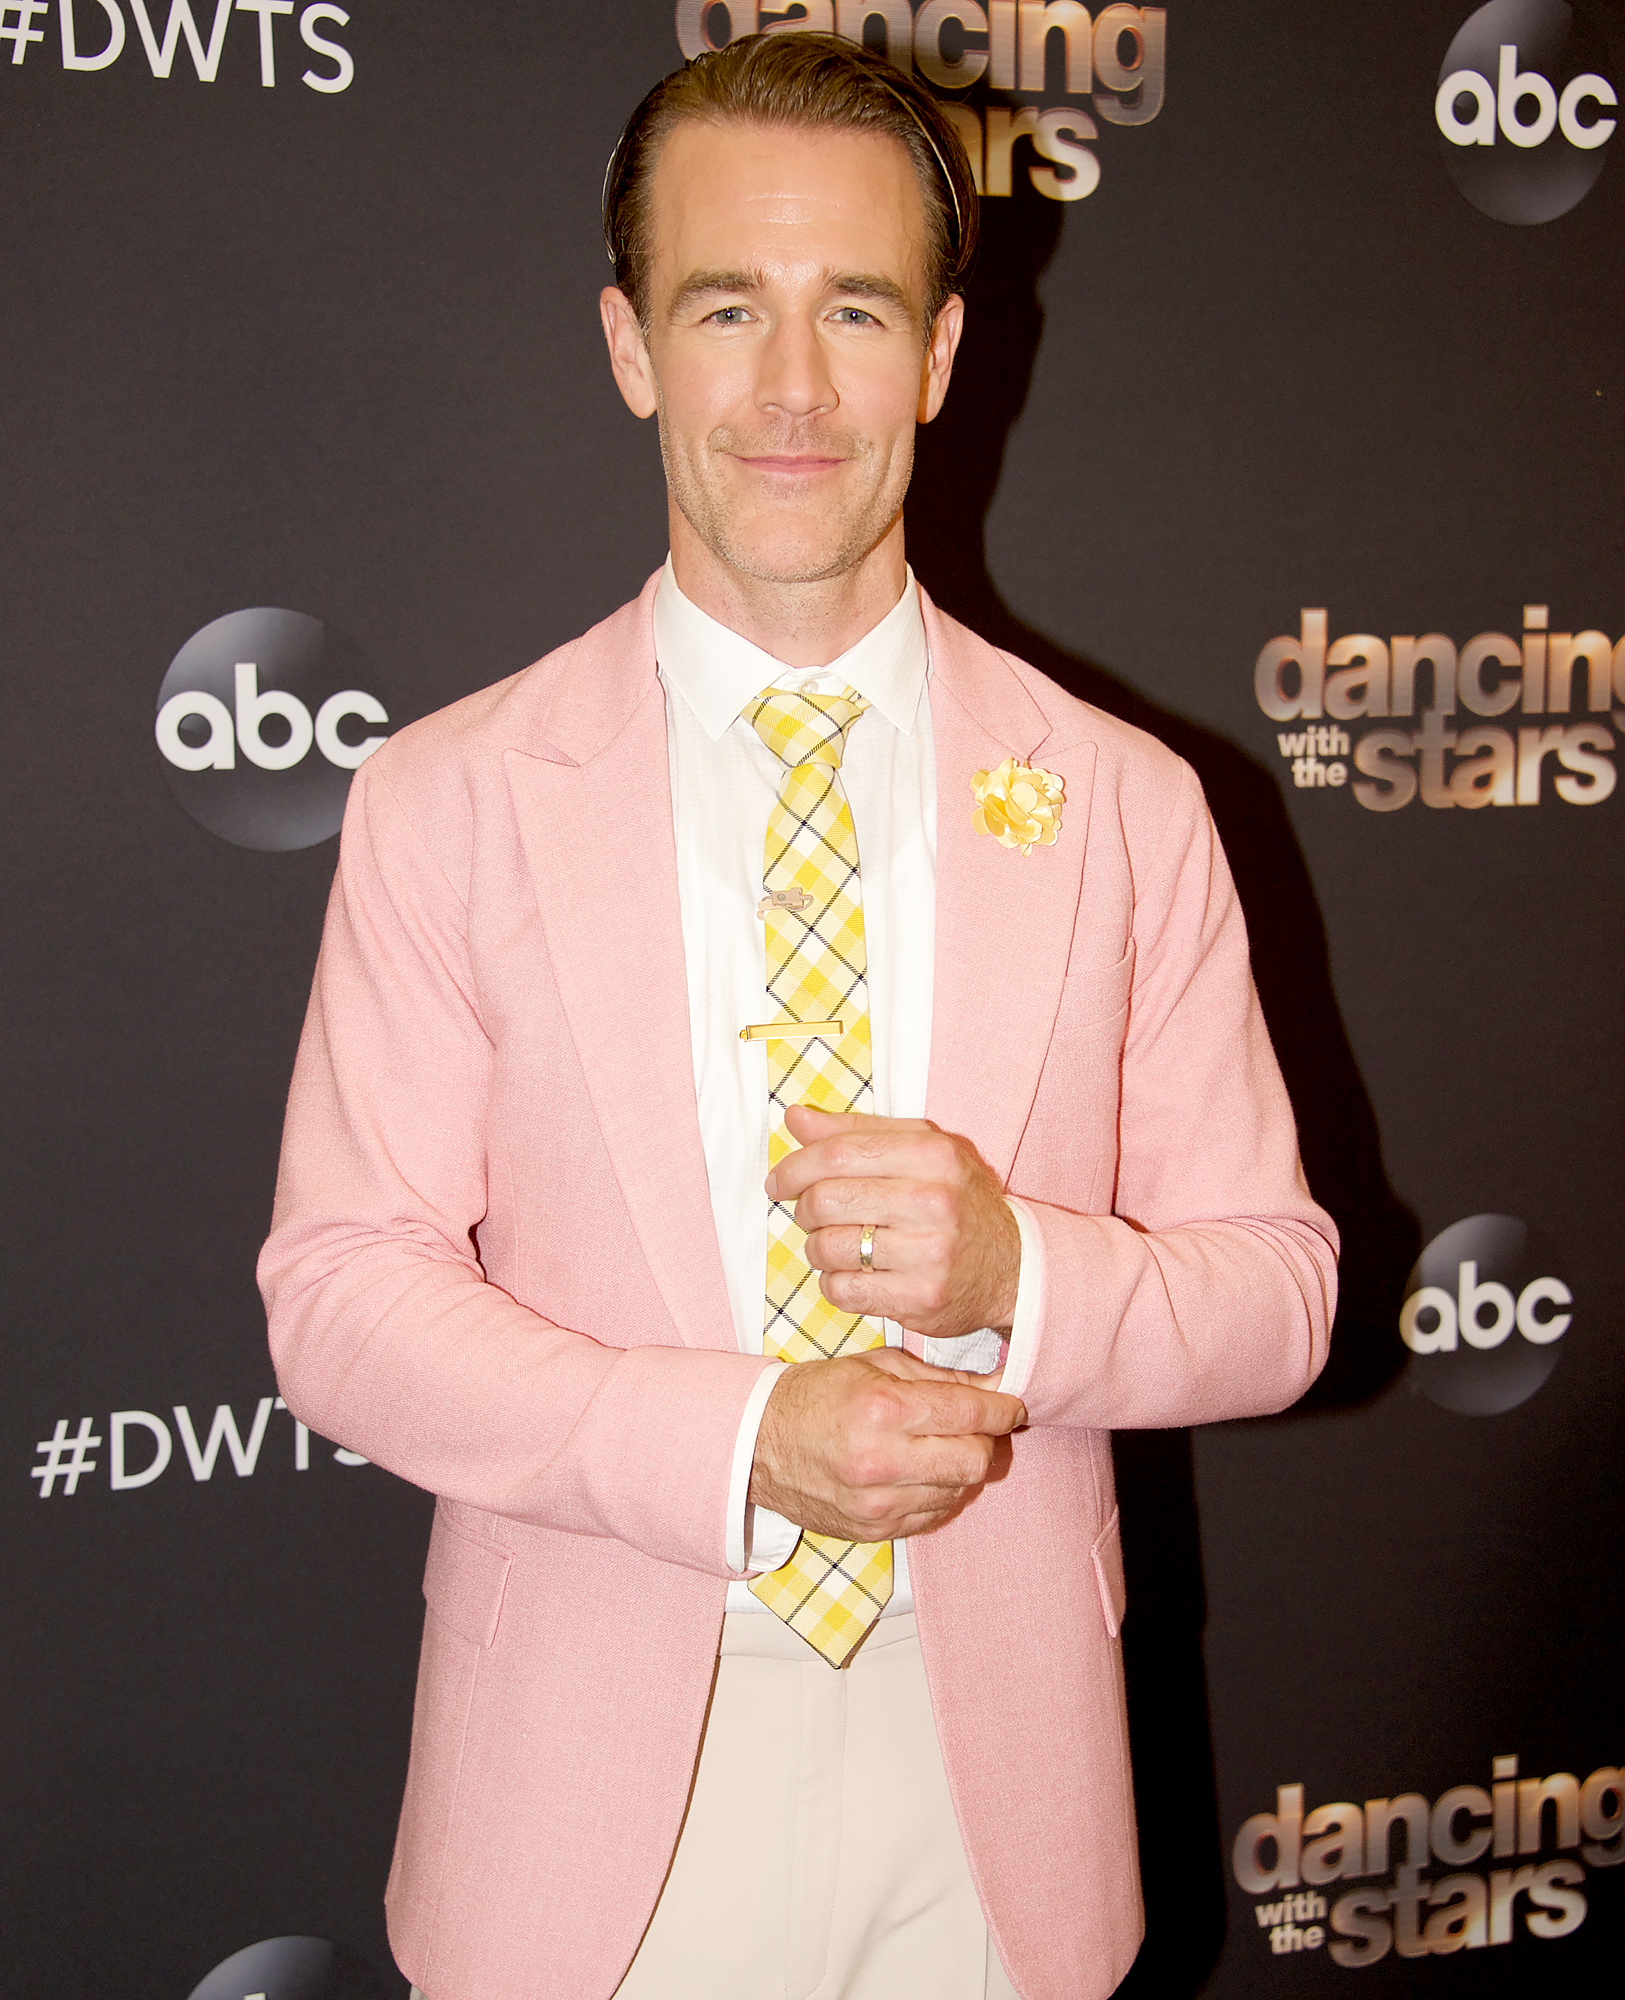 James-Van-Der-Beek-Dawsons-Creek-Parents-Cheer-Him-on-at-DWTS-2